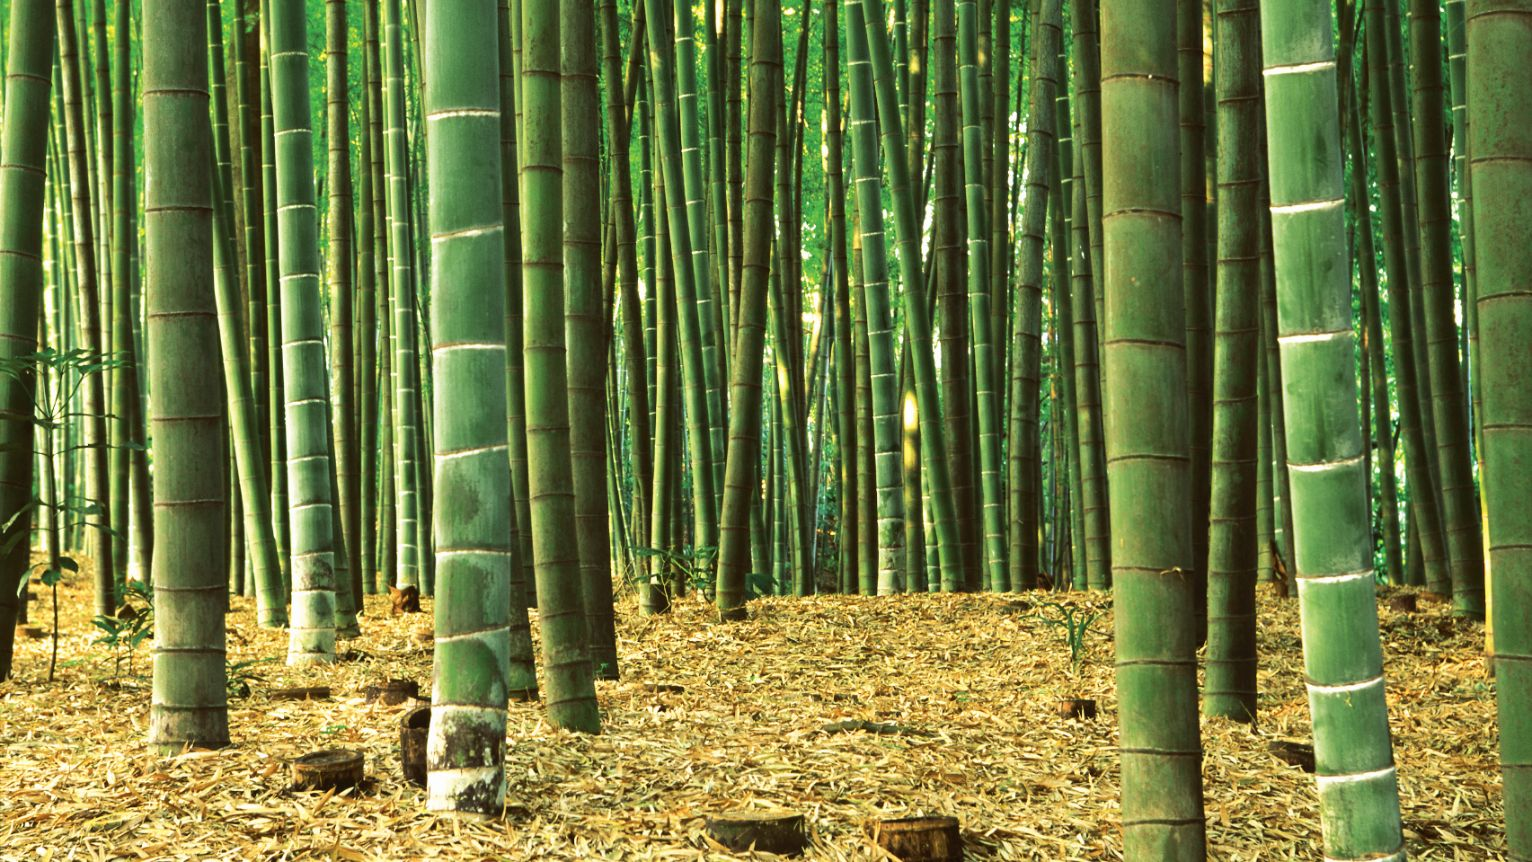 bamboo forest and bamboo stumps after being cut